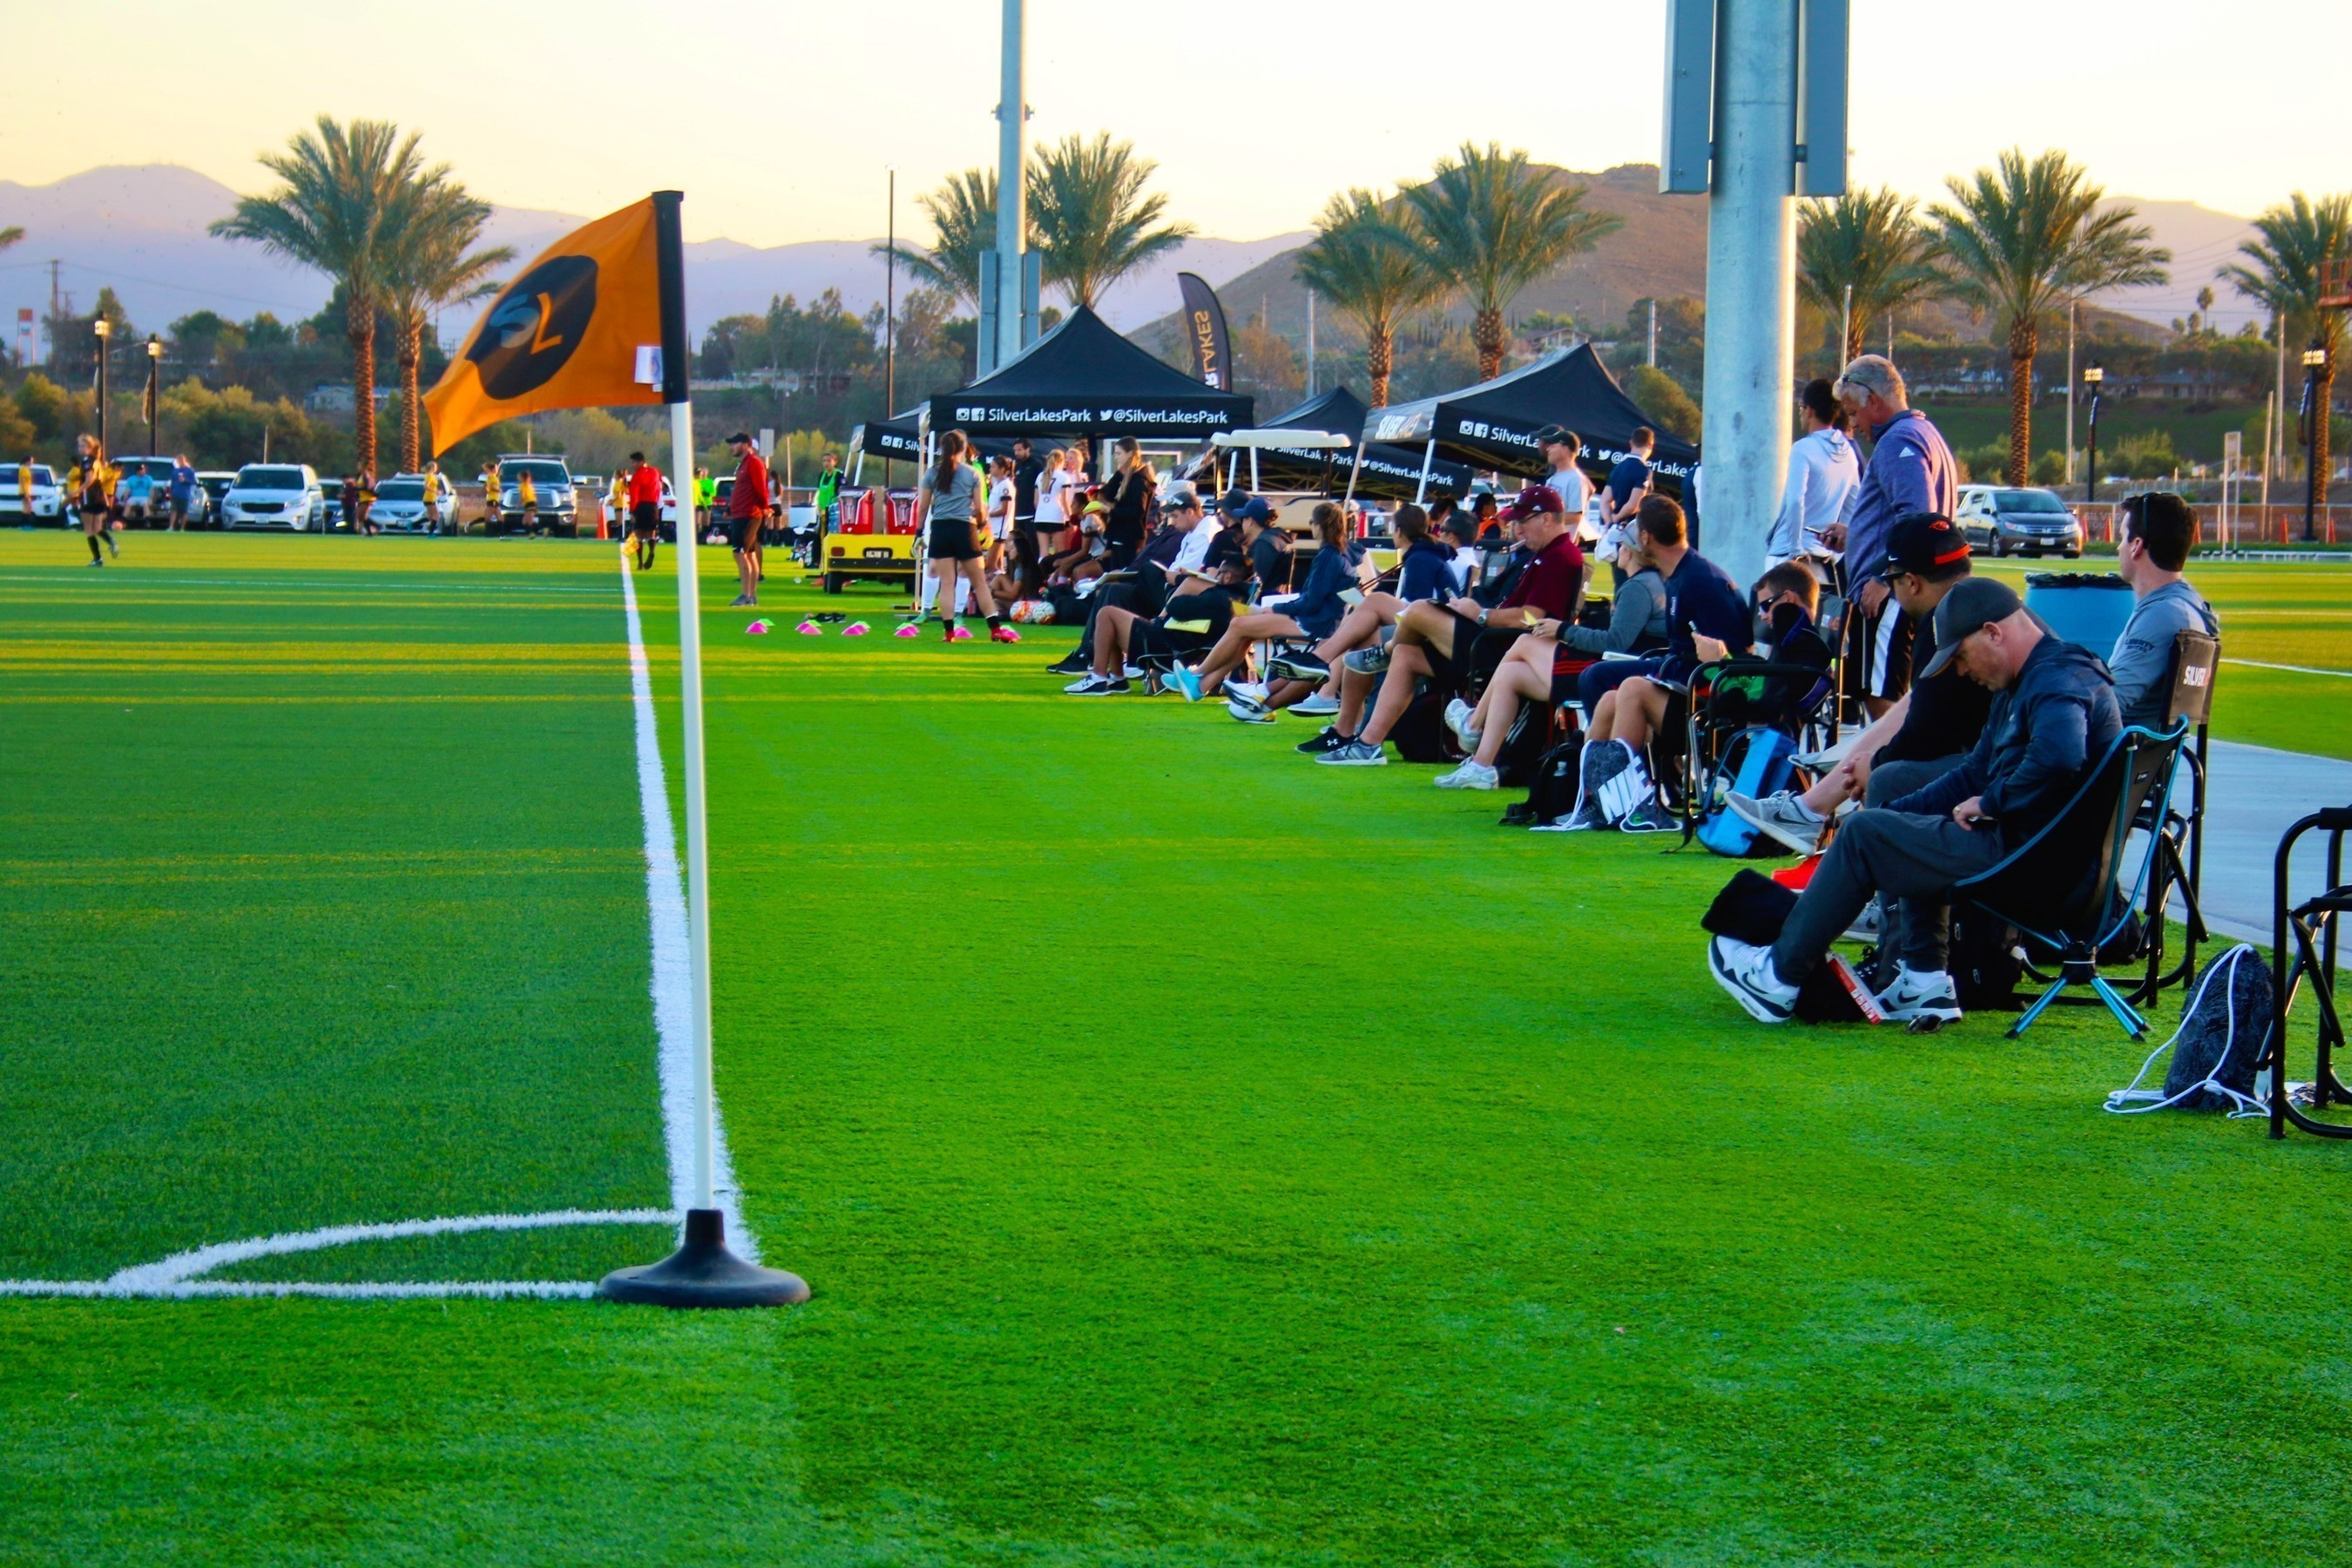 Over 250 college coaches attended the first annual SilverLakes College Showcase event.  The participation by high-level coaches throughout the country included among others, Stanford, Texas A&M, Cornell, North Western, UCLA, and Cal Berkeley.